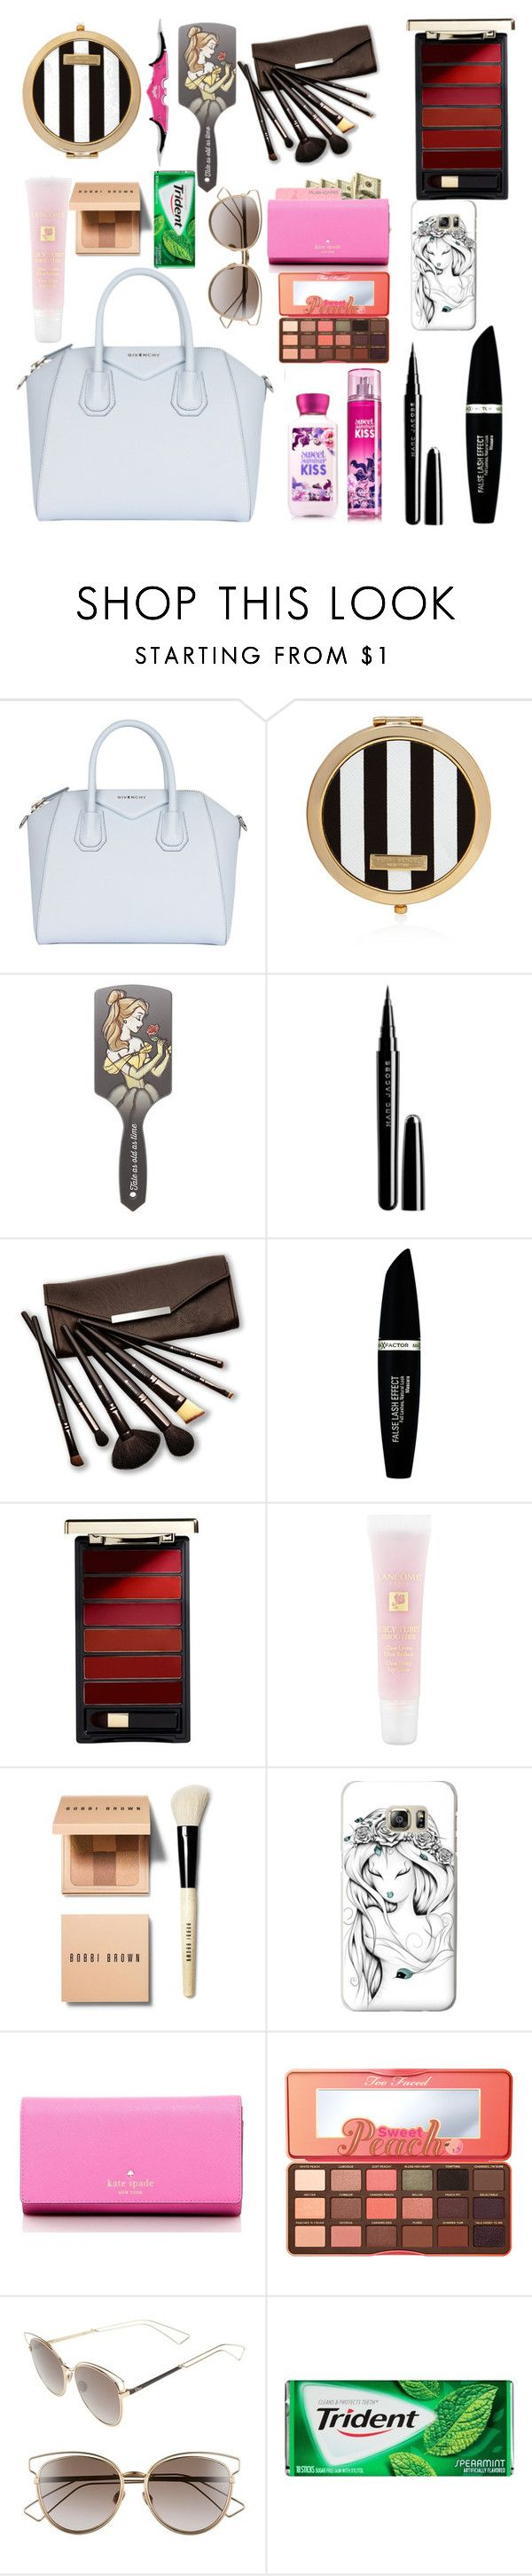 """""""what's in my purse"""" by misslewis97 on Polyvore featuring beauty, Givenchy, Henri Bendel, Disney, Marc Jacobs, Borghese, Max Factor, L'Oréal Paris, Lancôme and Bobbi Brown Cosmetics"""